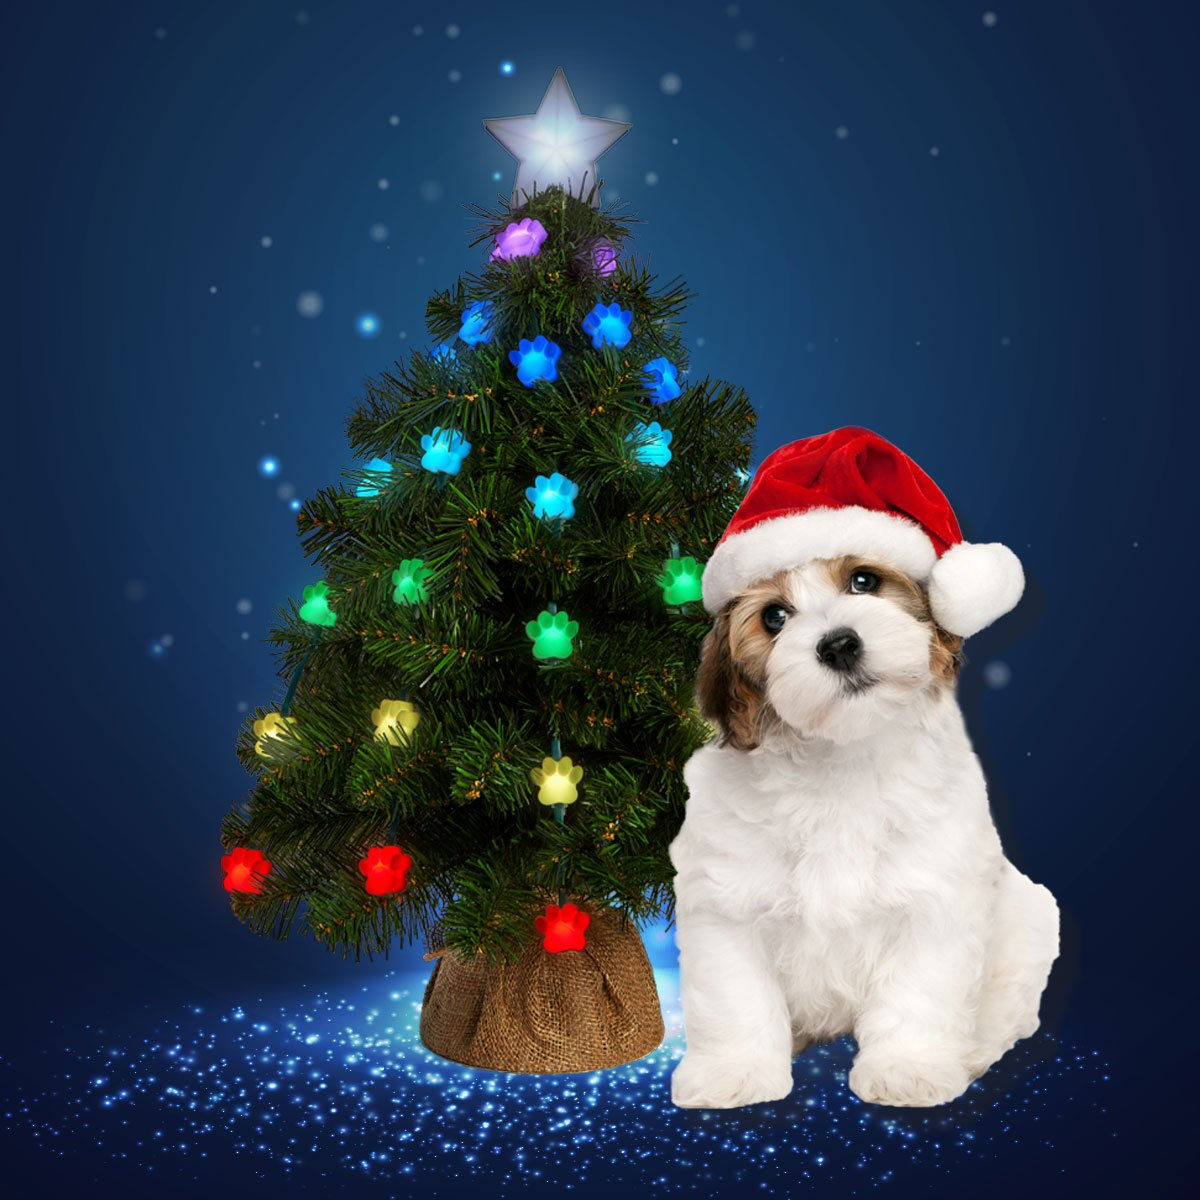 Itu0027s The Ultimate #Christmas Tree. Available At Http://geekmytree.com #dogs  #pets #shopping #family #SharkTank #Kickstarterpic.twitter.com/Oi3UqeqEzE